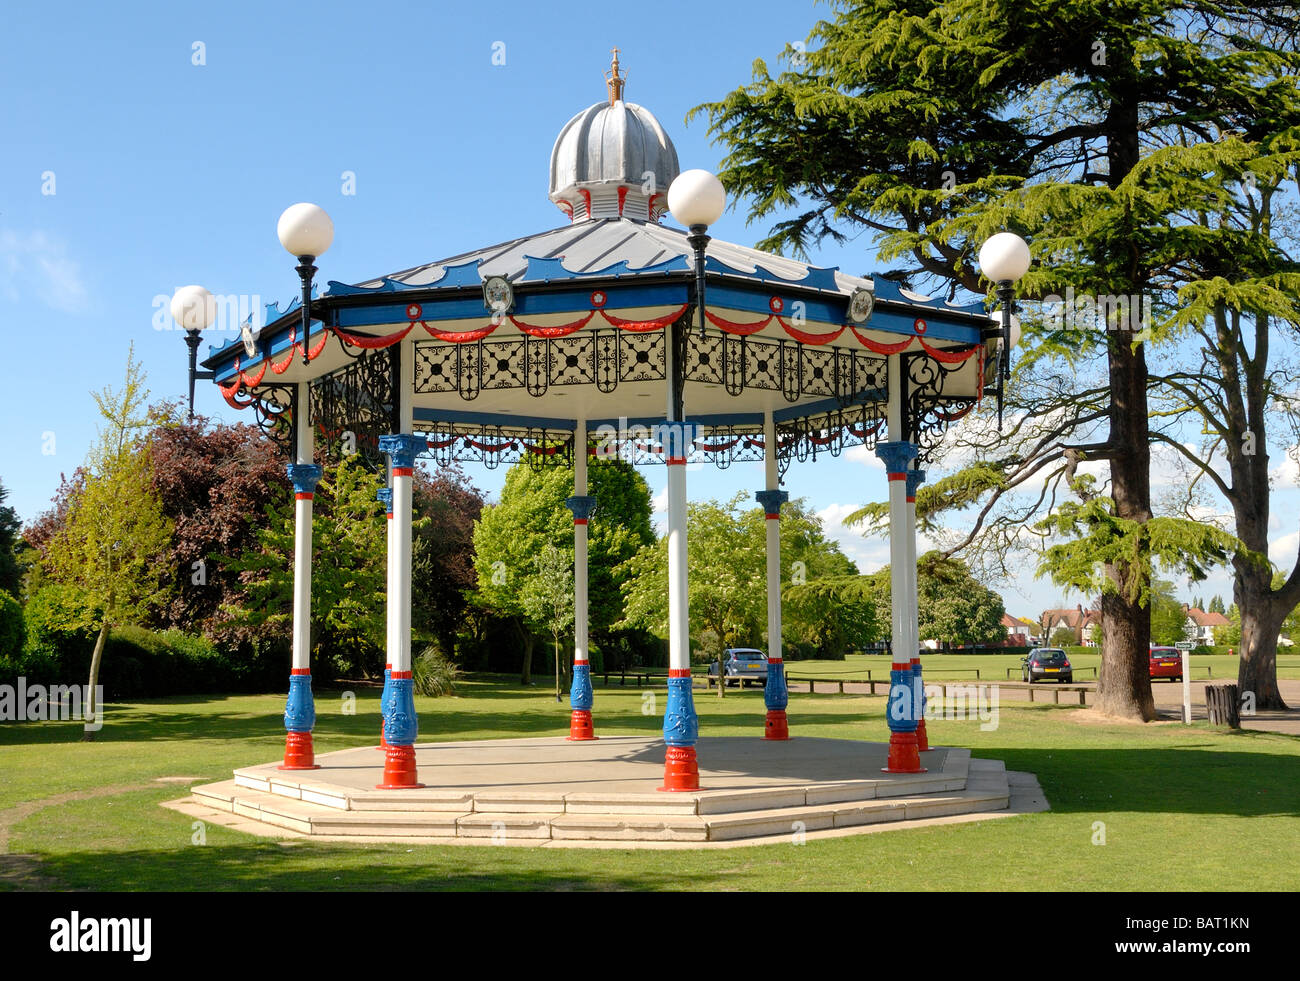 Priory Park Prittlewell Southend on Sea Essex England UK - Stock Image